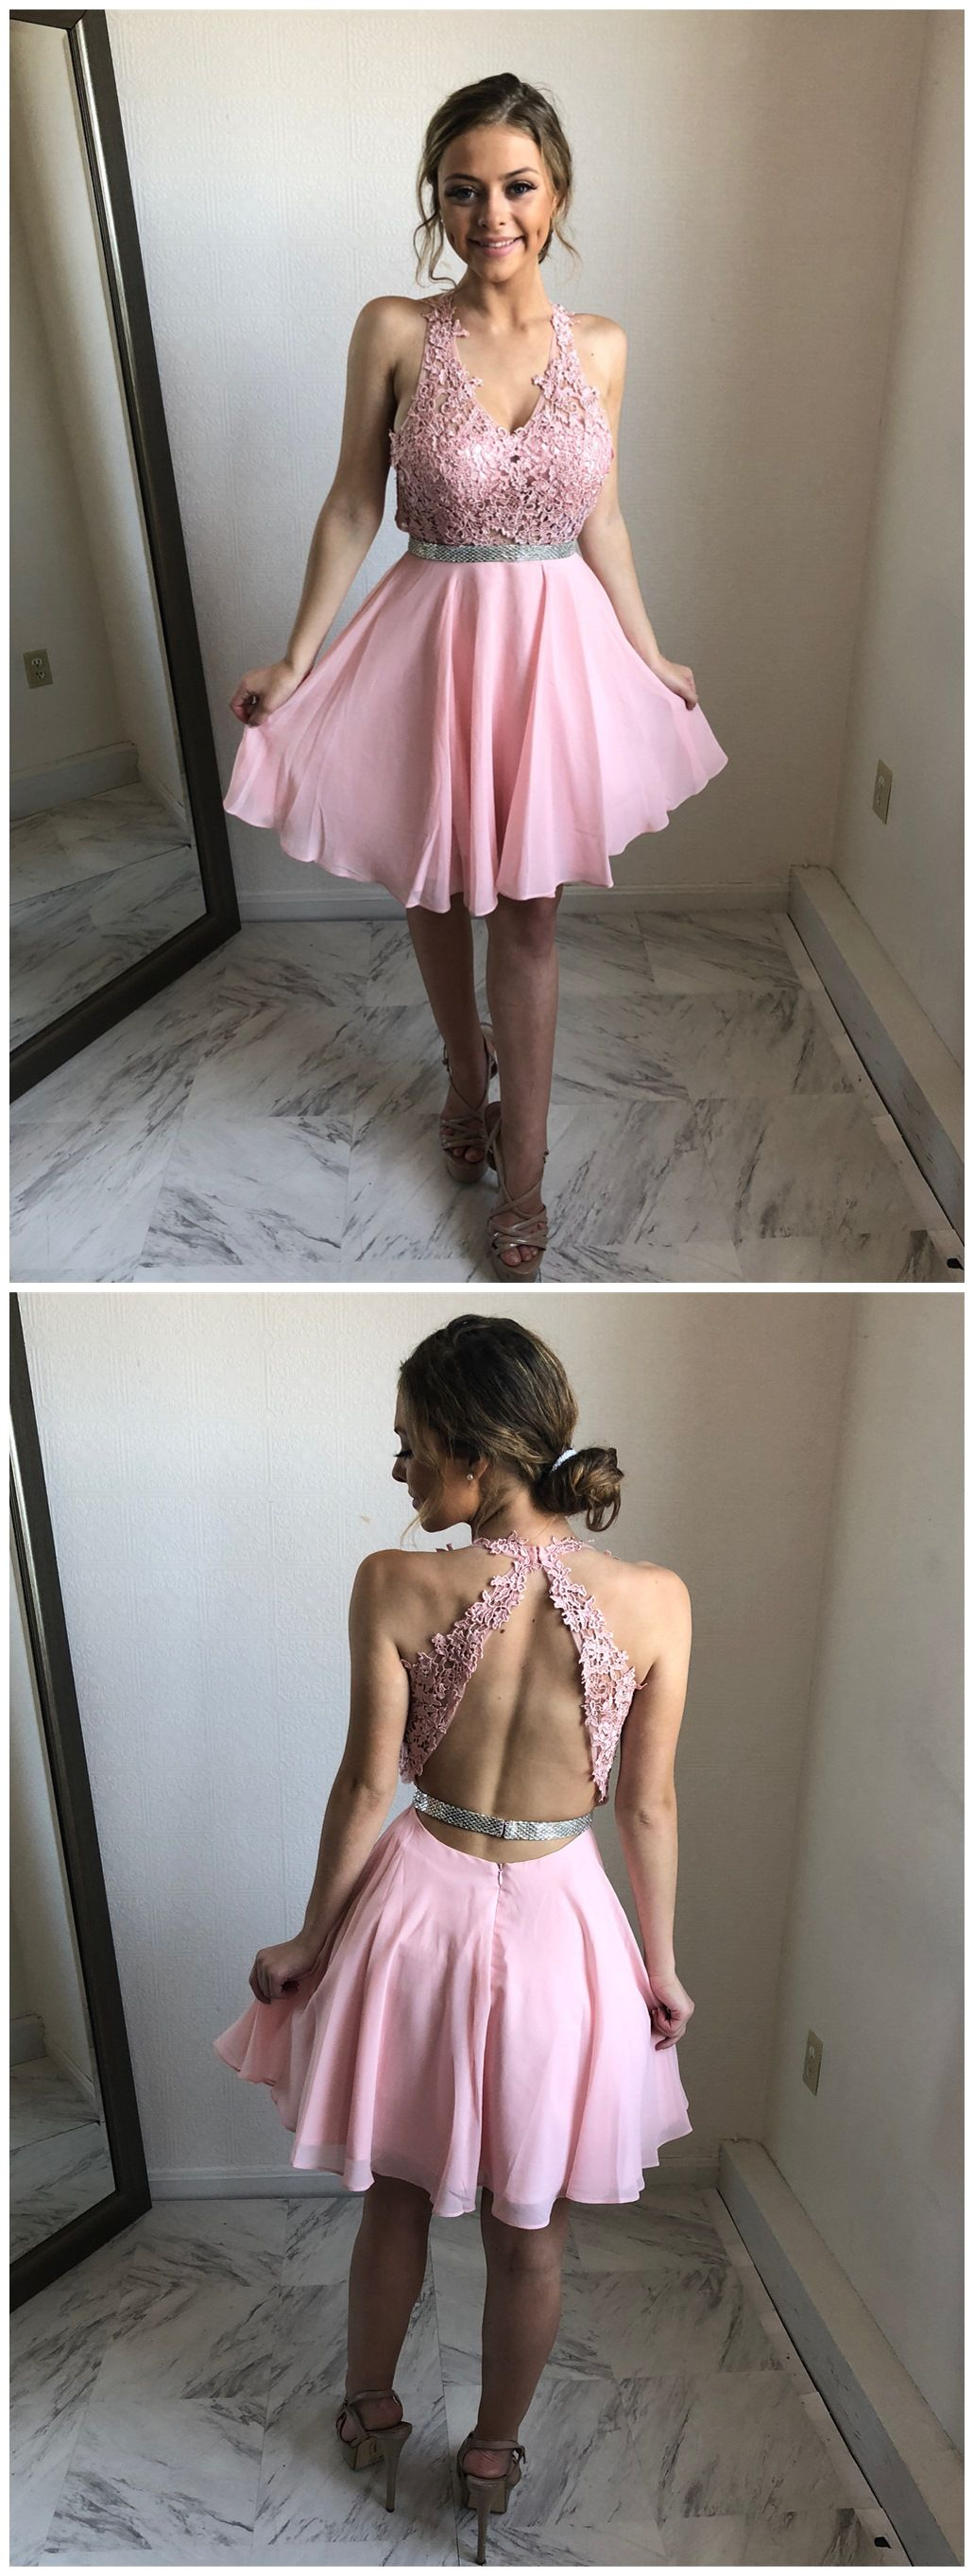 Pink dress hoco  Pink Lace and Chiffon Homecoming Dresses V Neck Open Back Hoco Dress